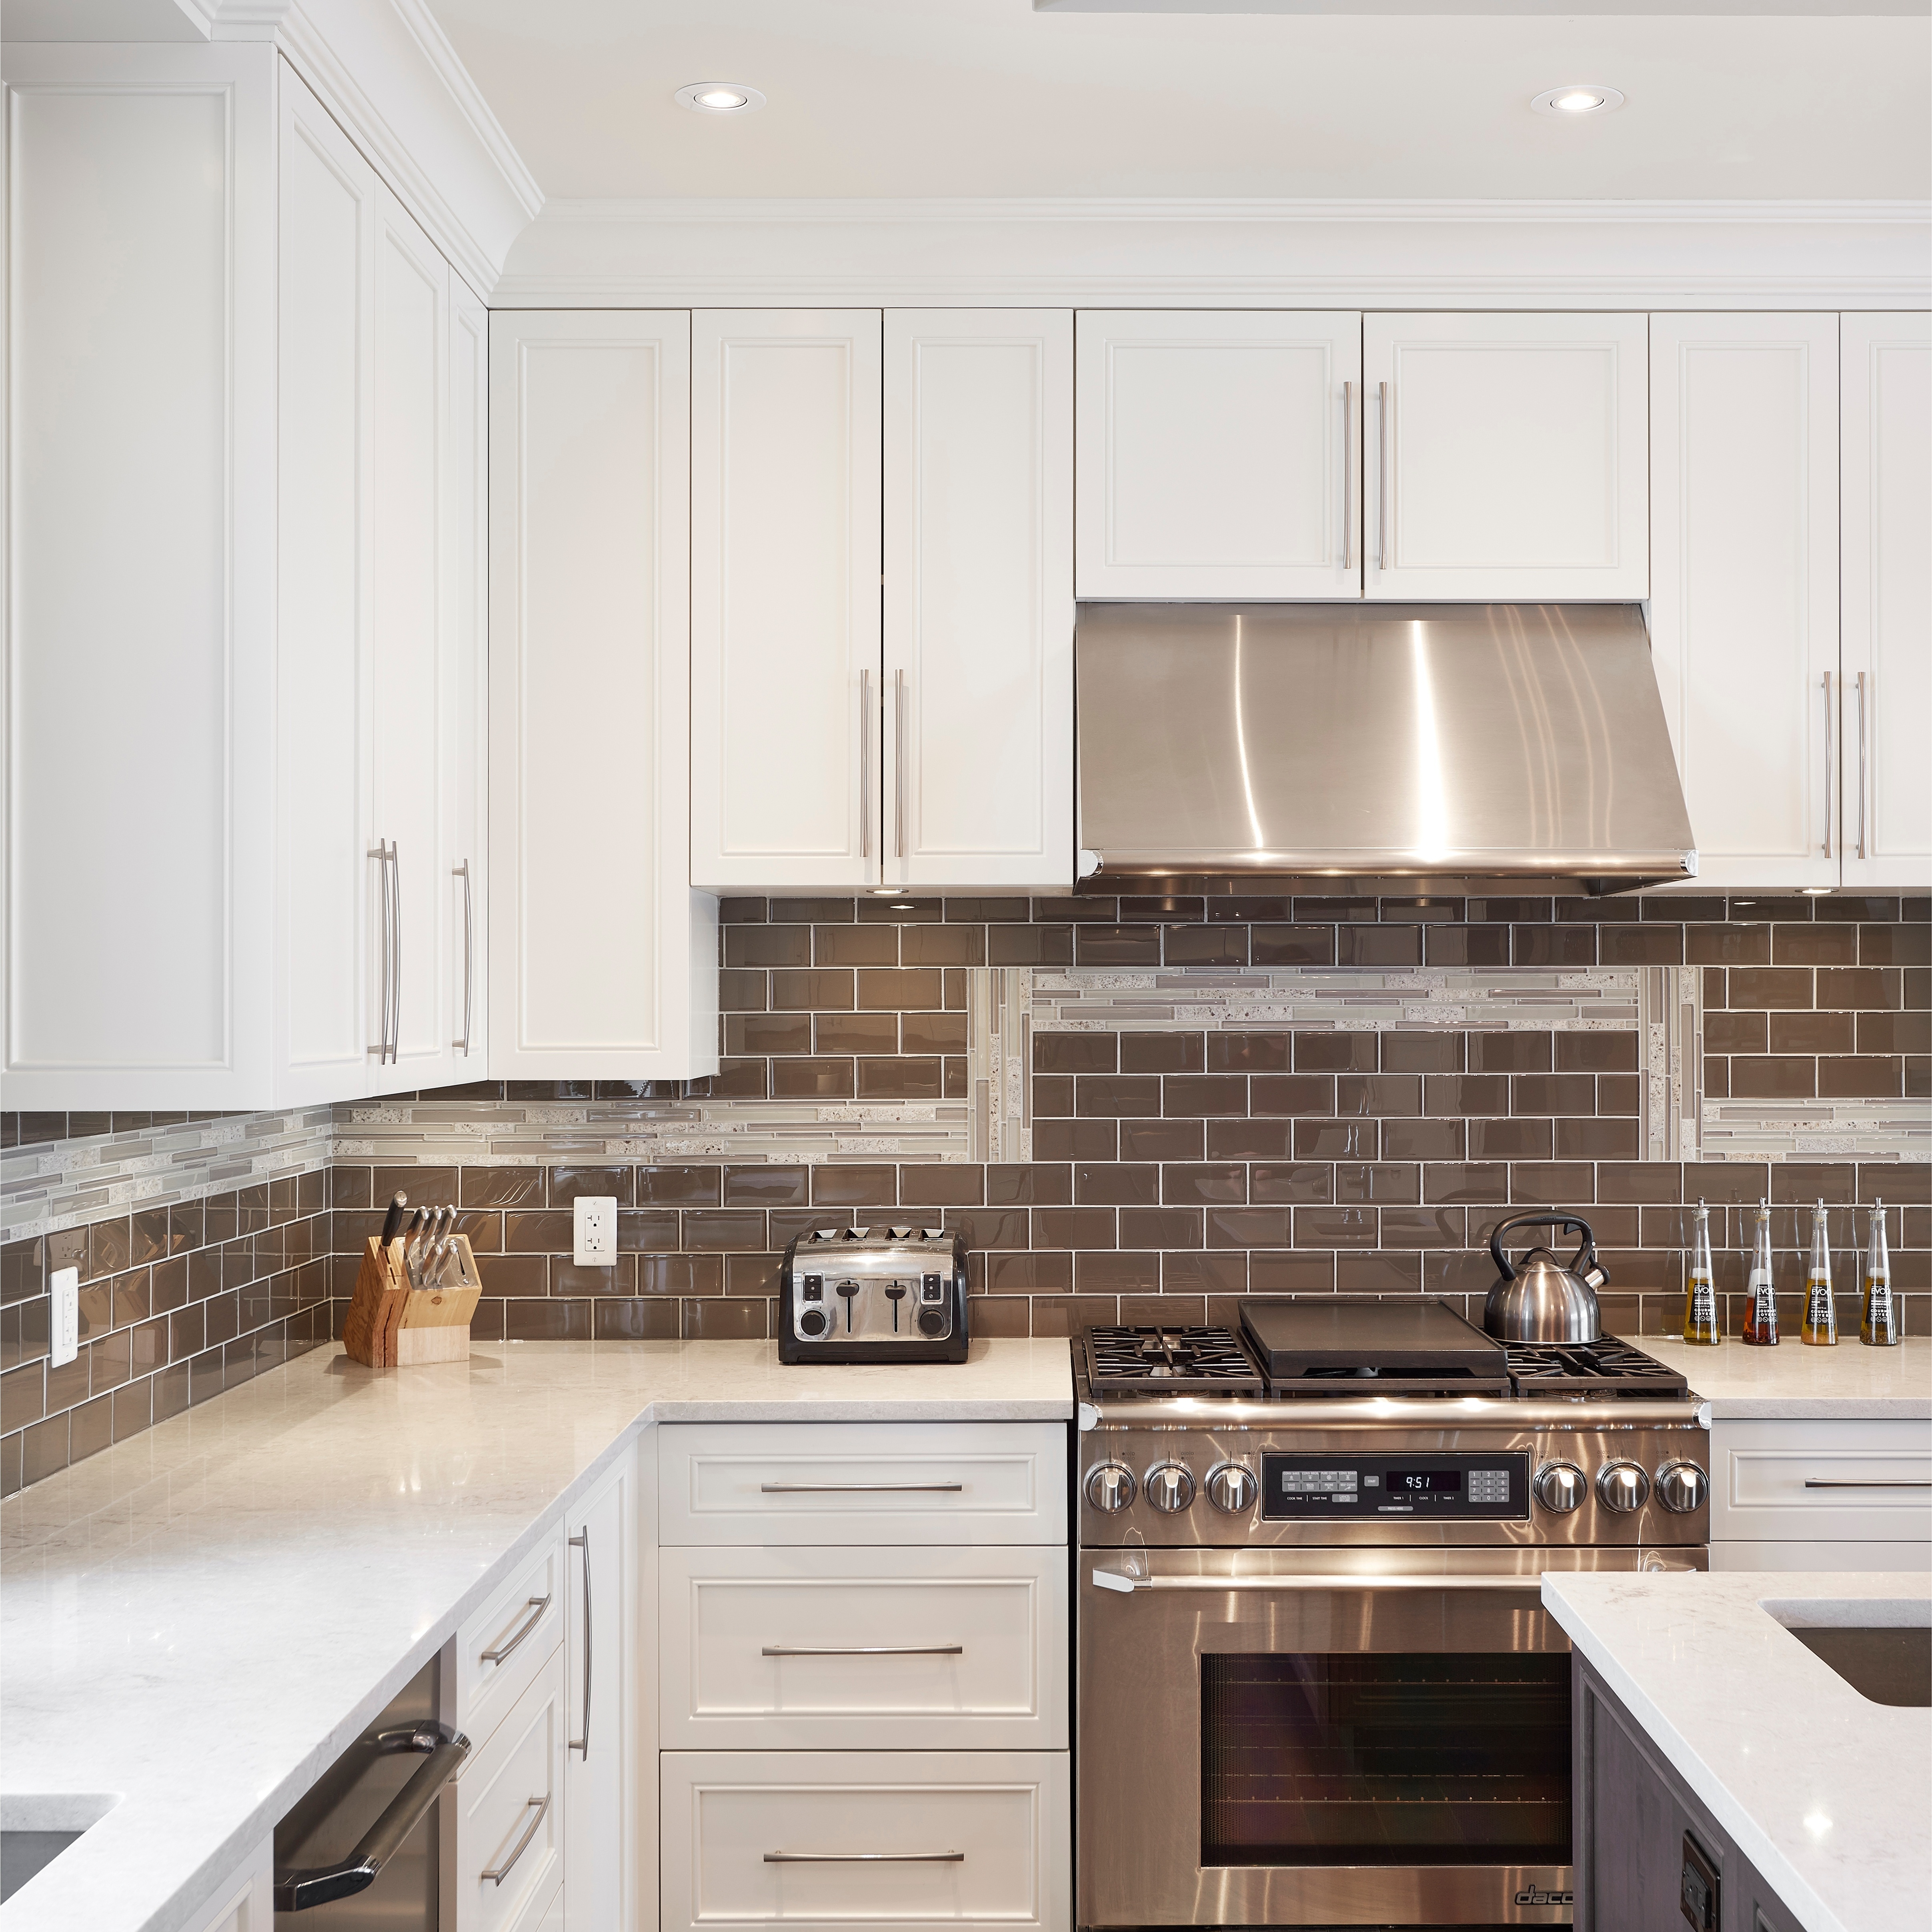 Update Your Kitchen On A Budget: How To Update Your Kitchen On A Limited Budget